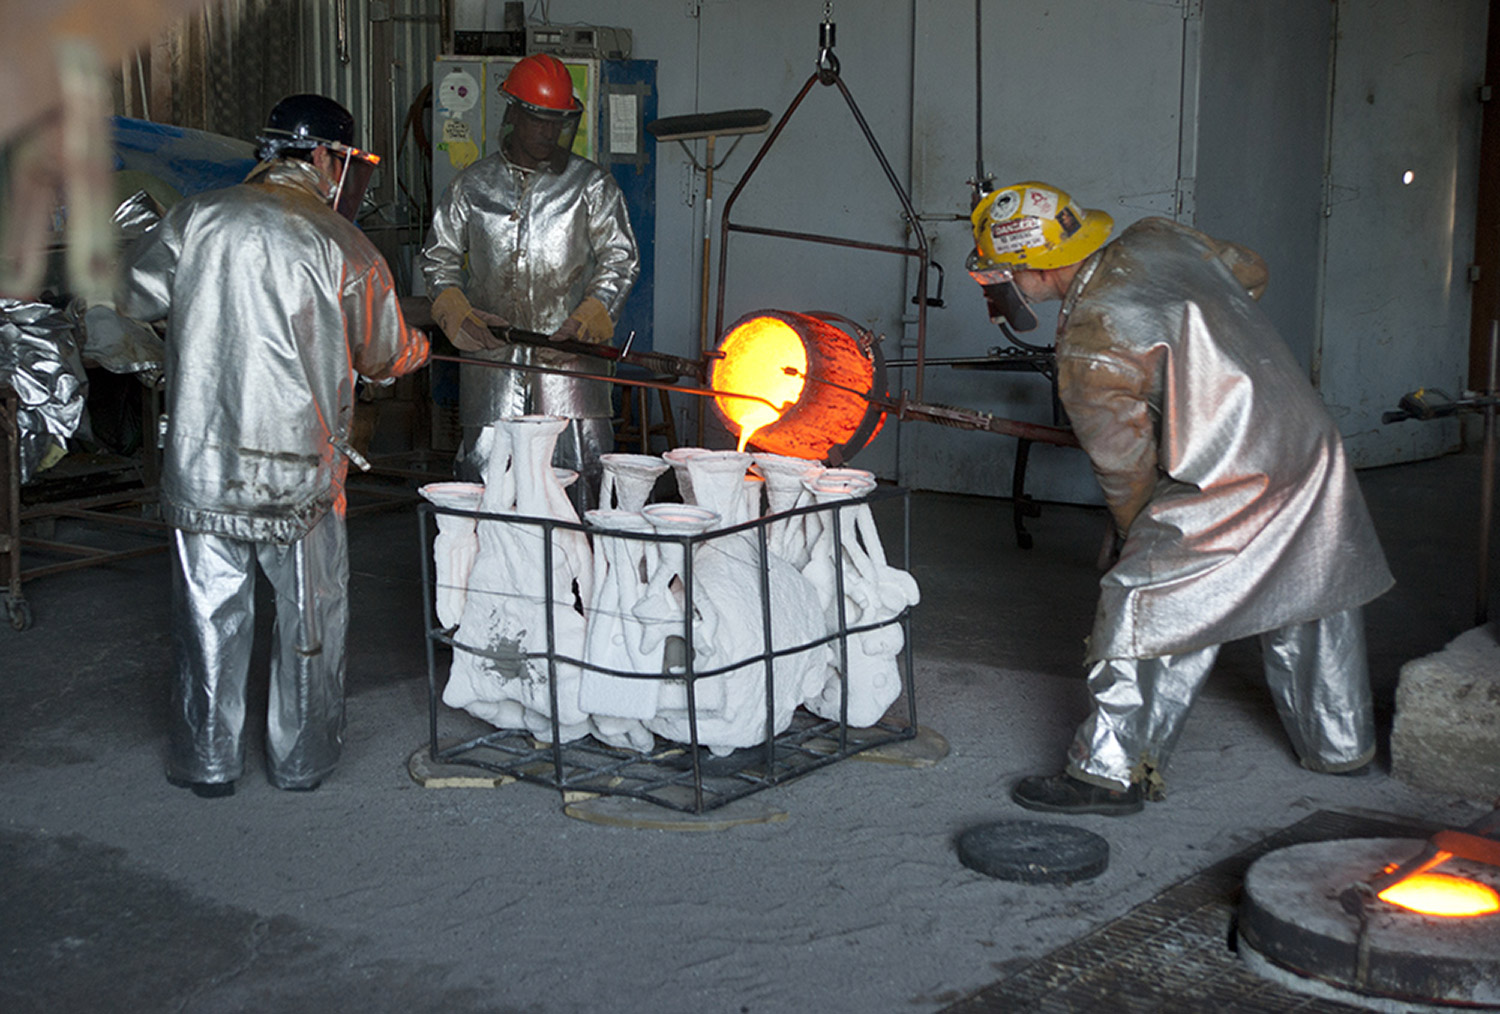 Molten bronze being poured into the a section of the full-sized Nikola Tesla statue ceramic shell.